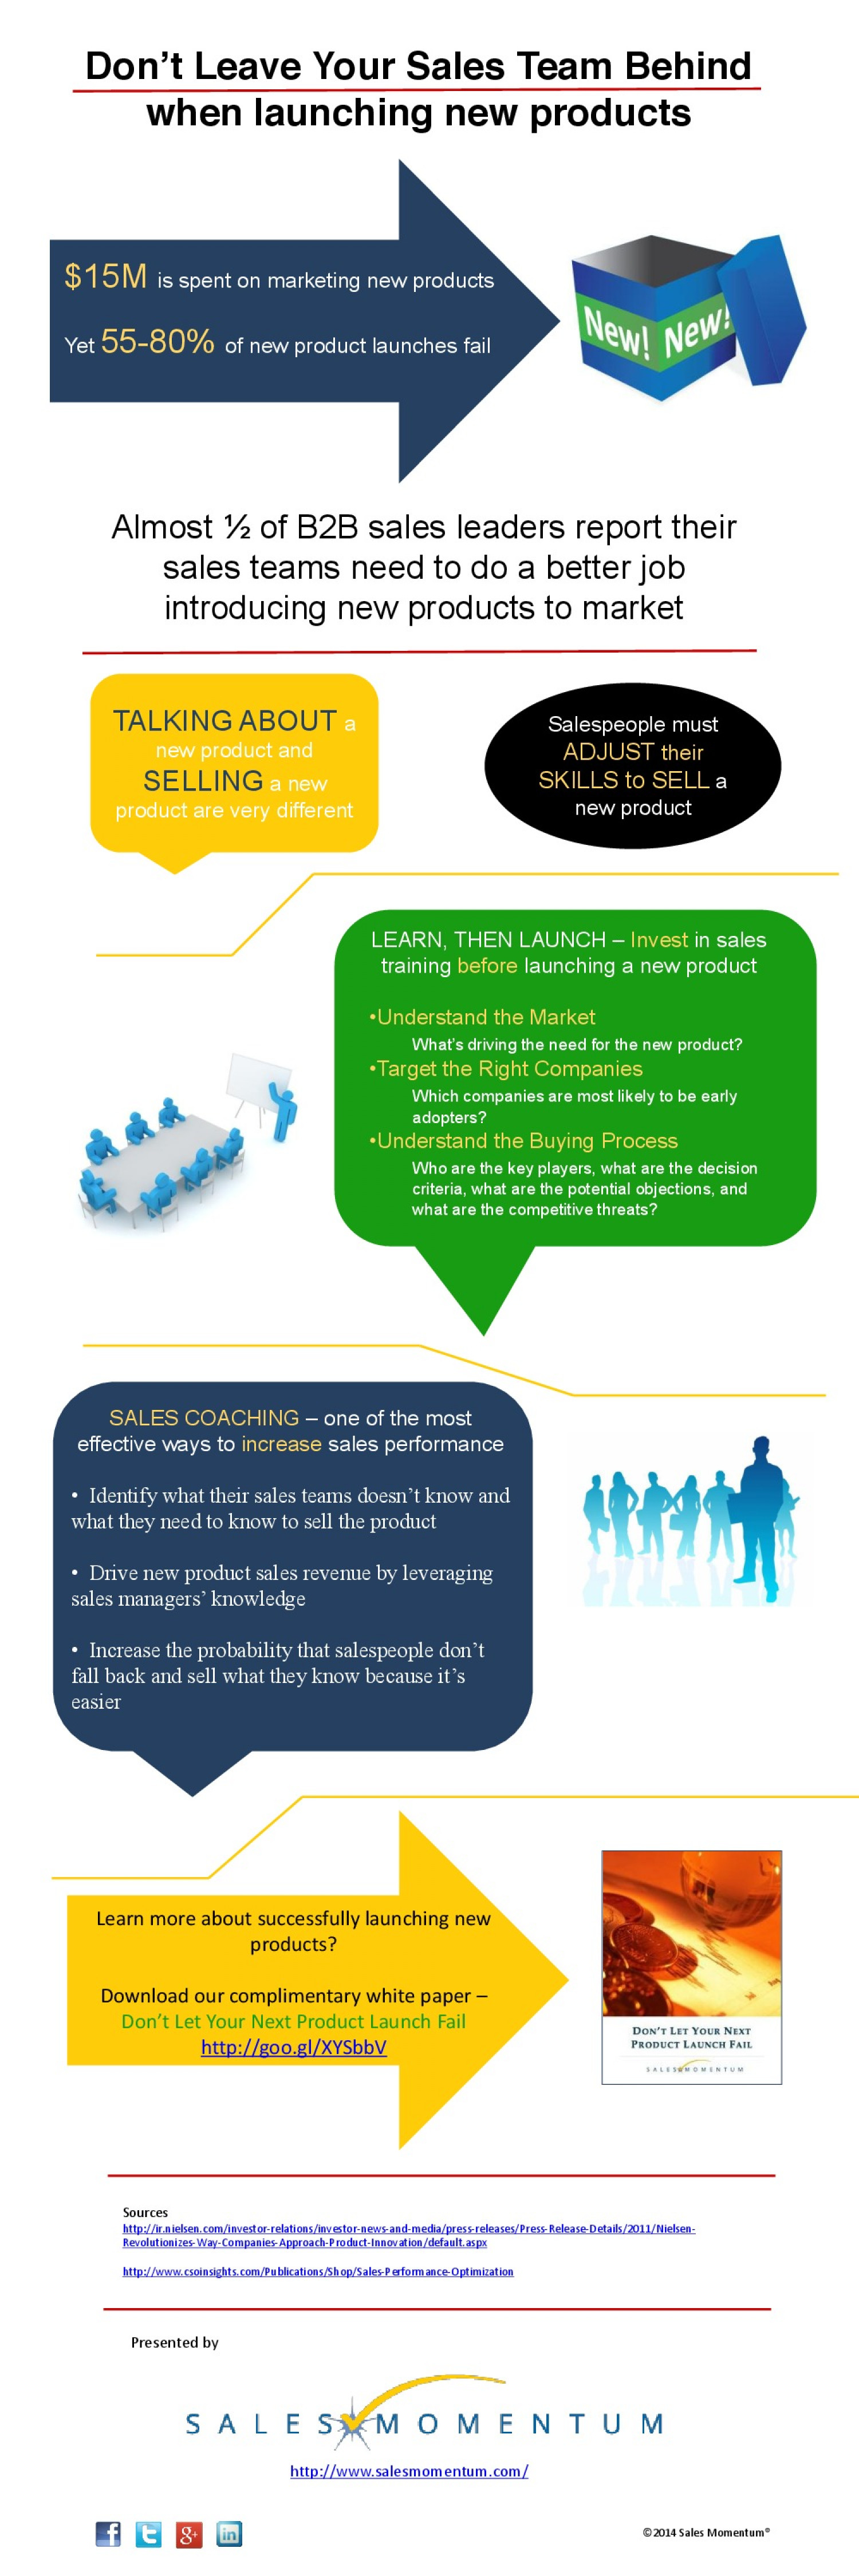 Don't Leave Your Sales Team Behind When Launching New Products Infographic